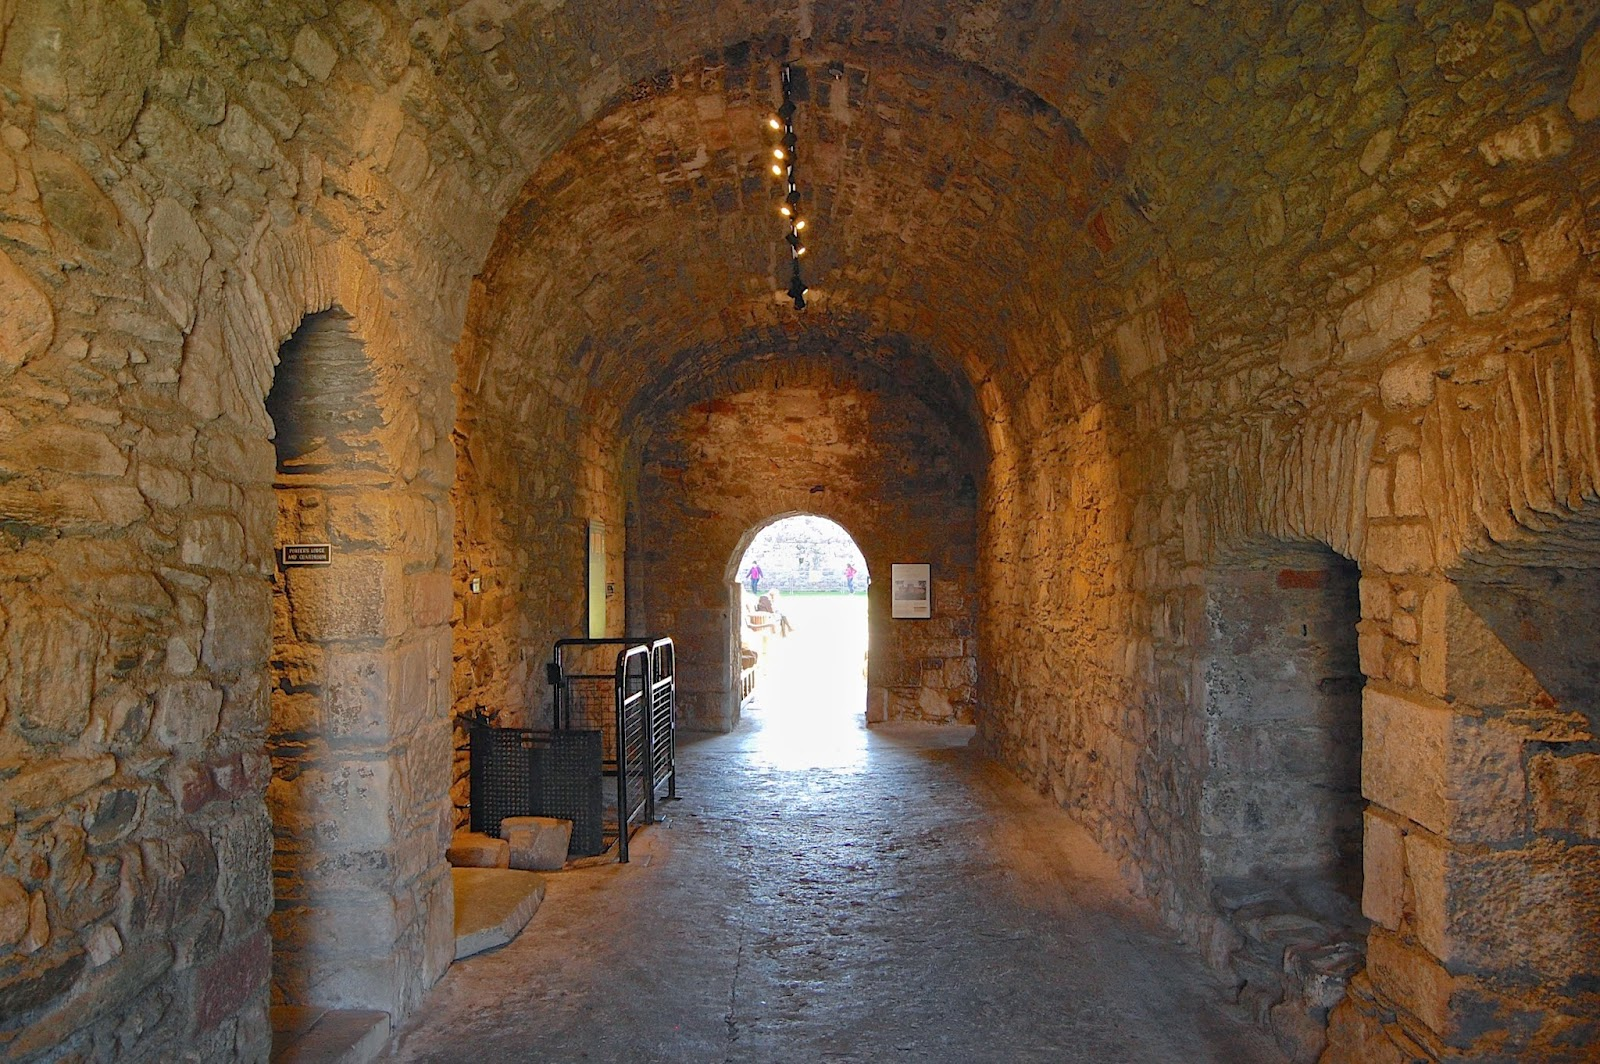 Vaulted entry tunnnel to Rothesay Castle